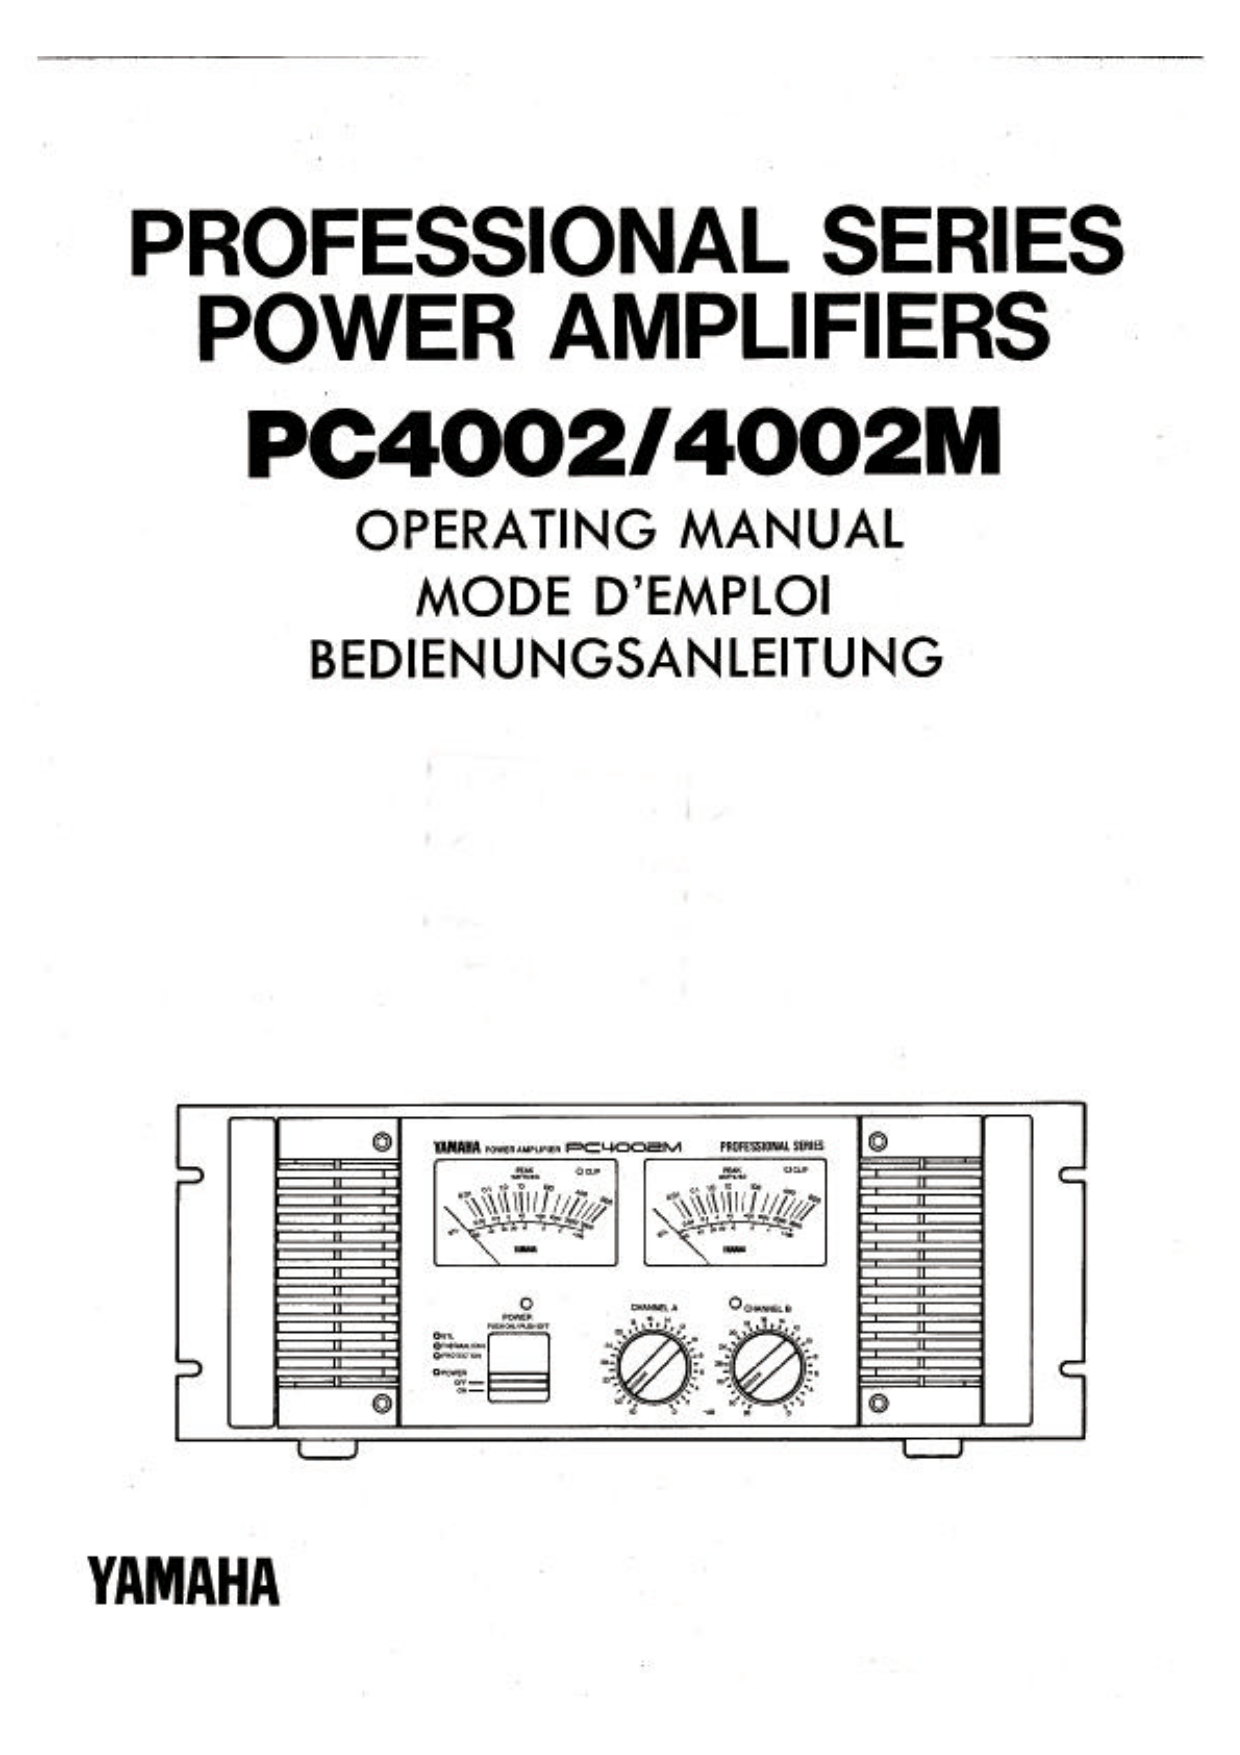 Download free pdf for Yamaha PC4002M Amp manual